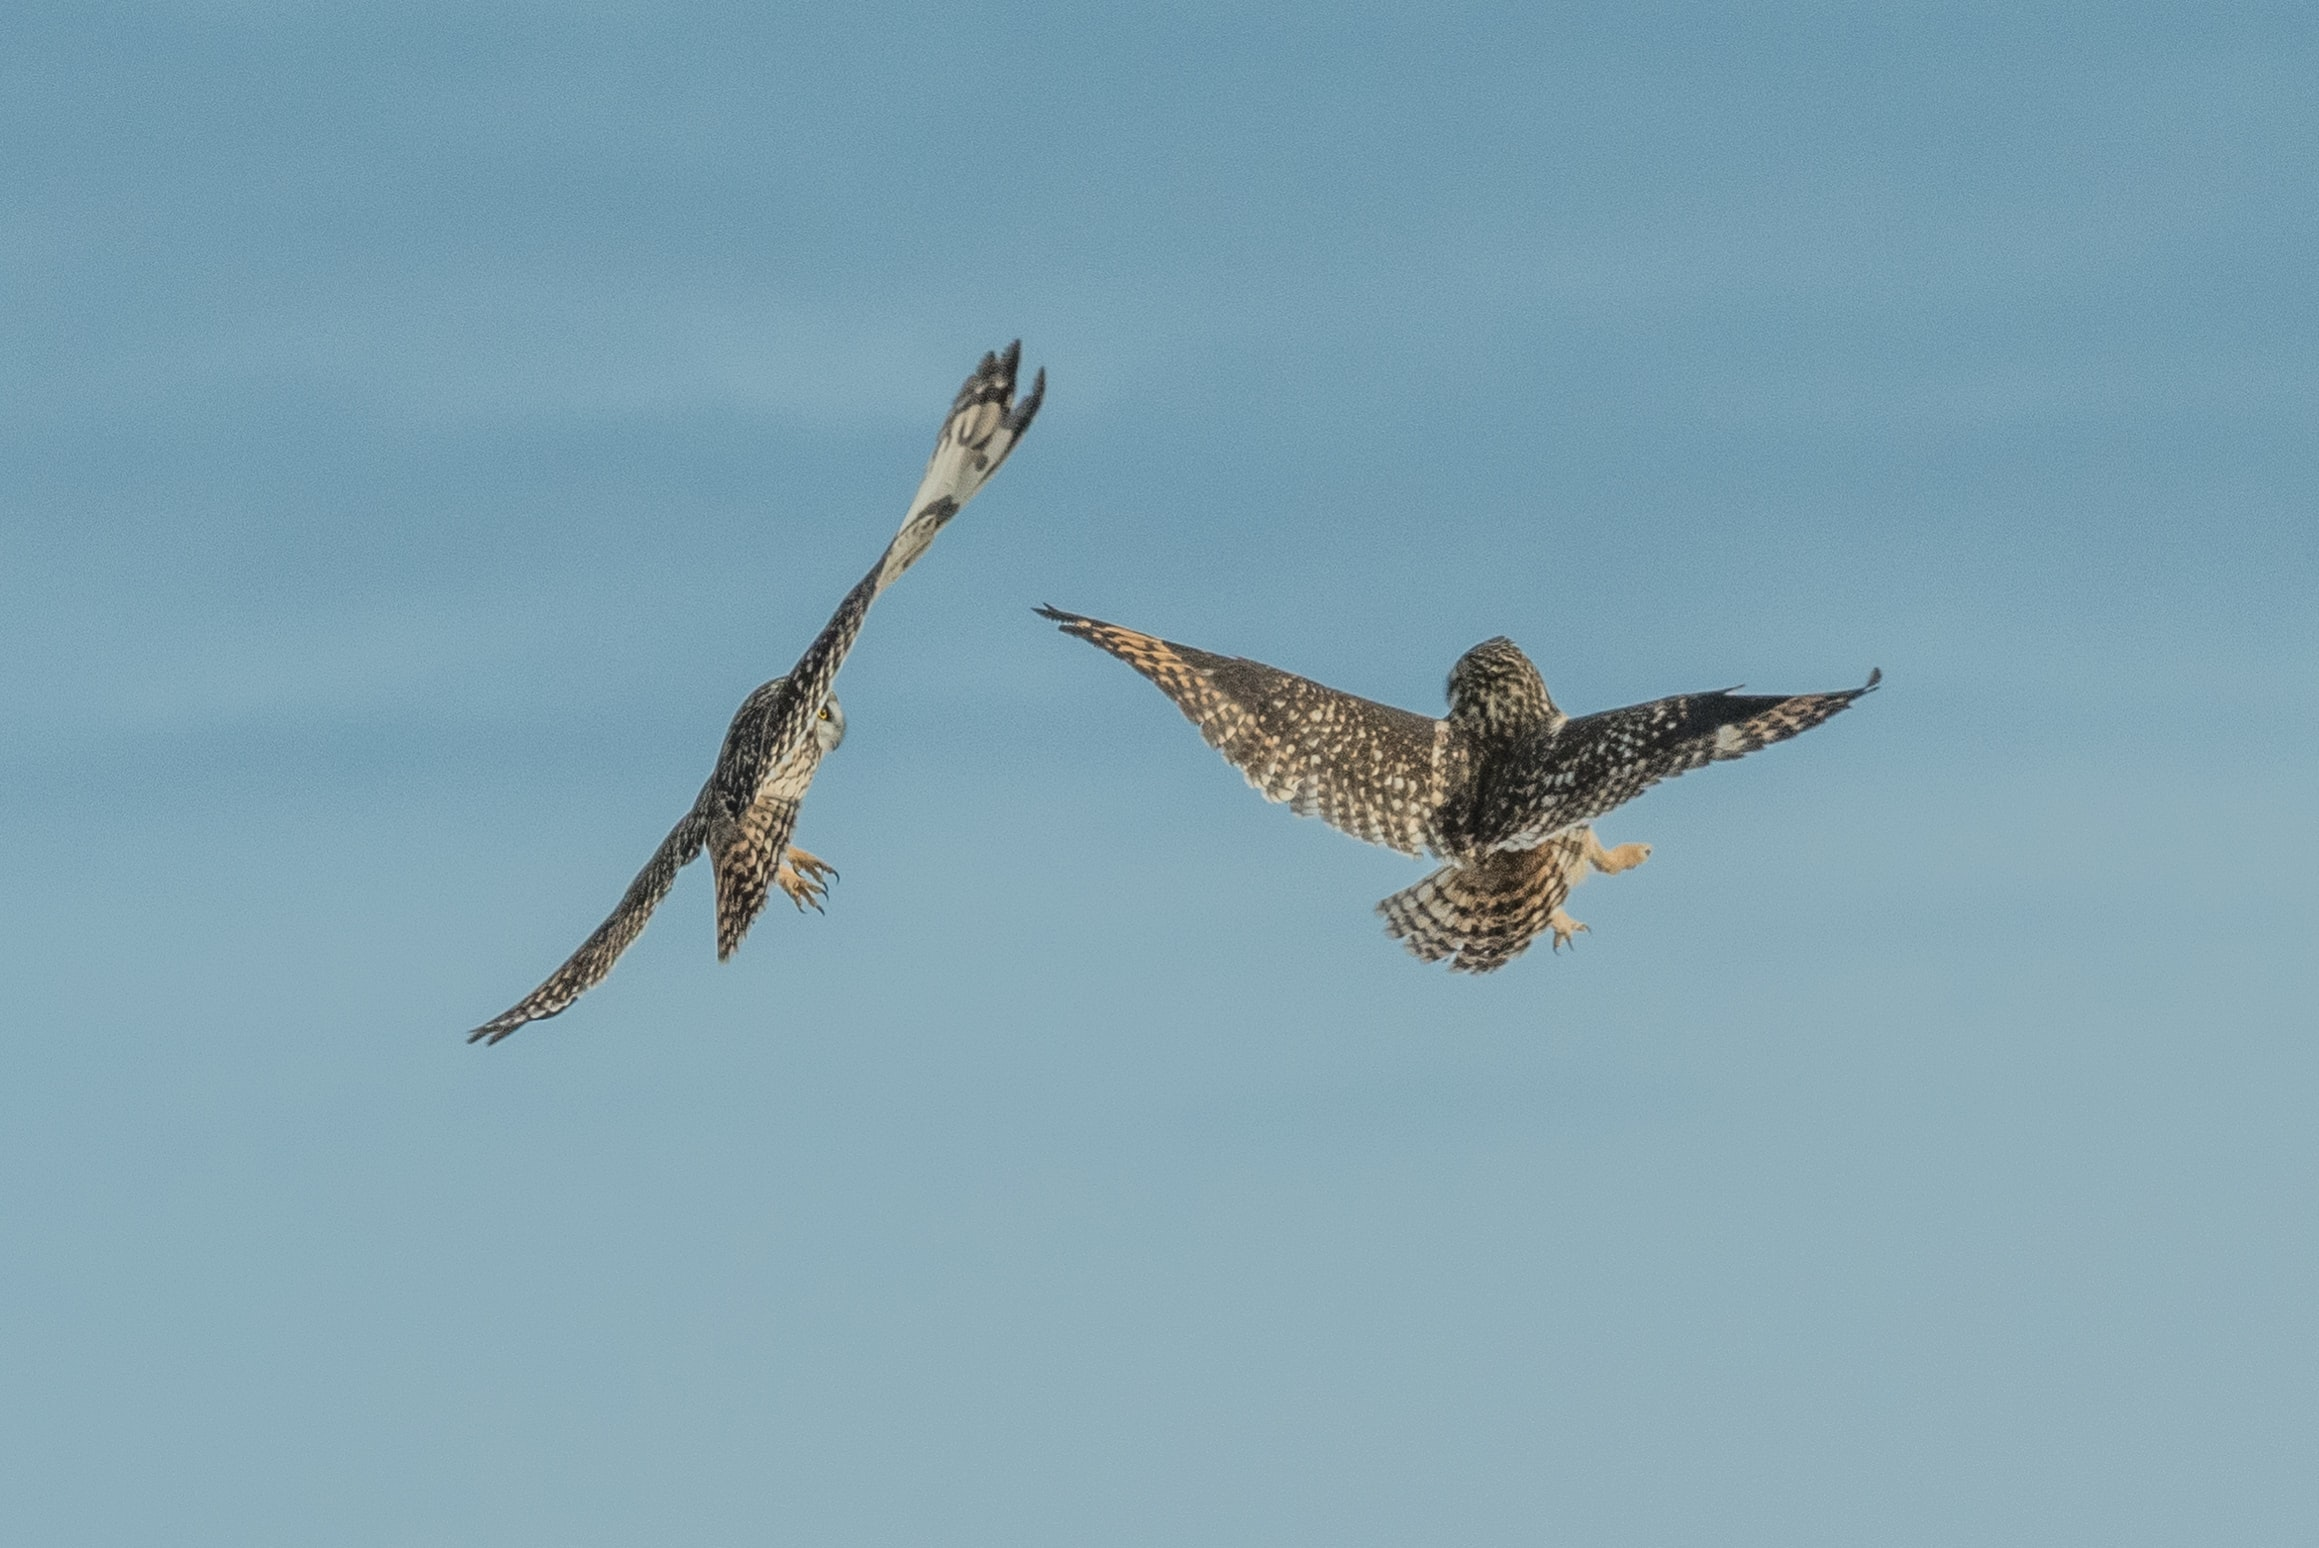 two birds flying during daytime